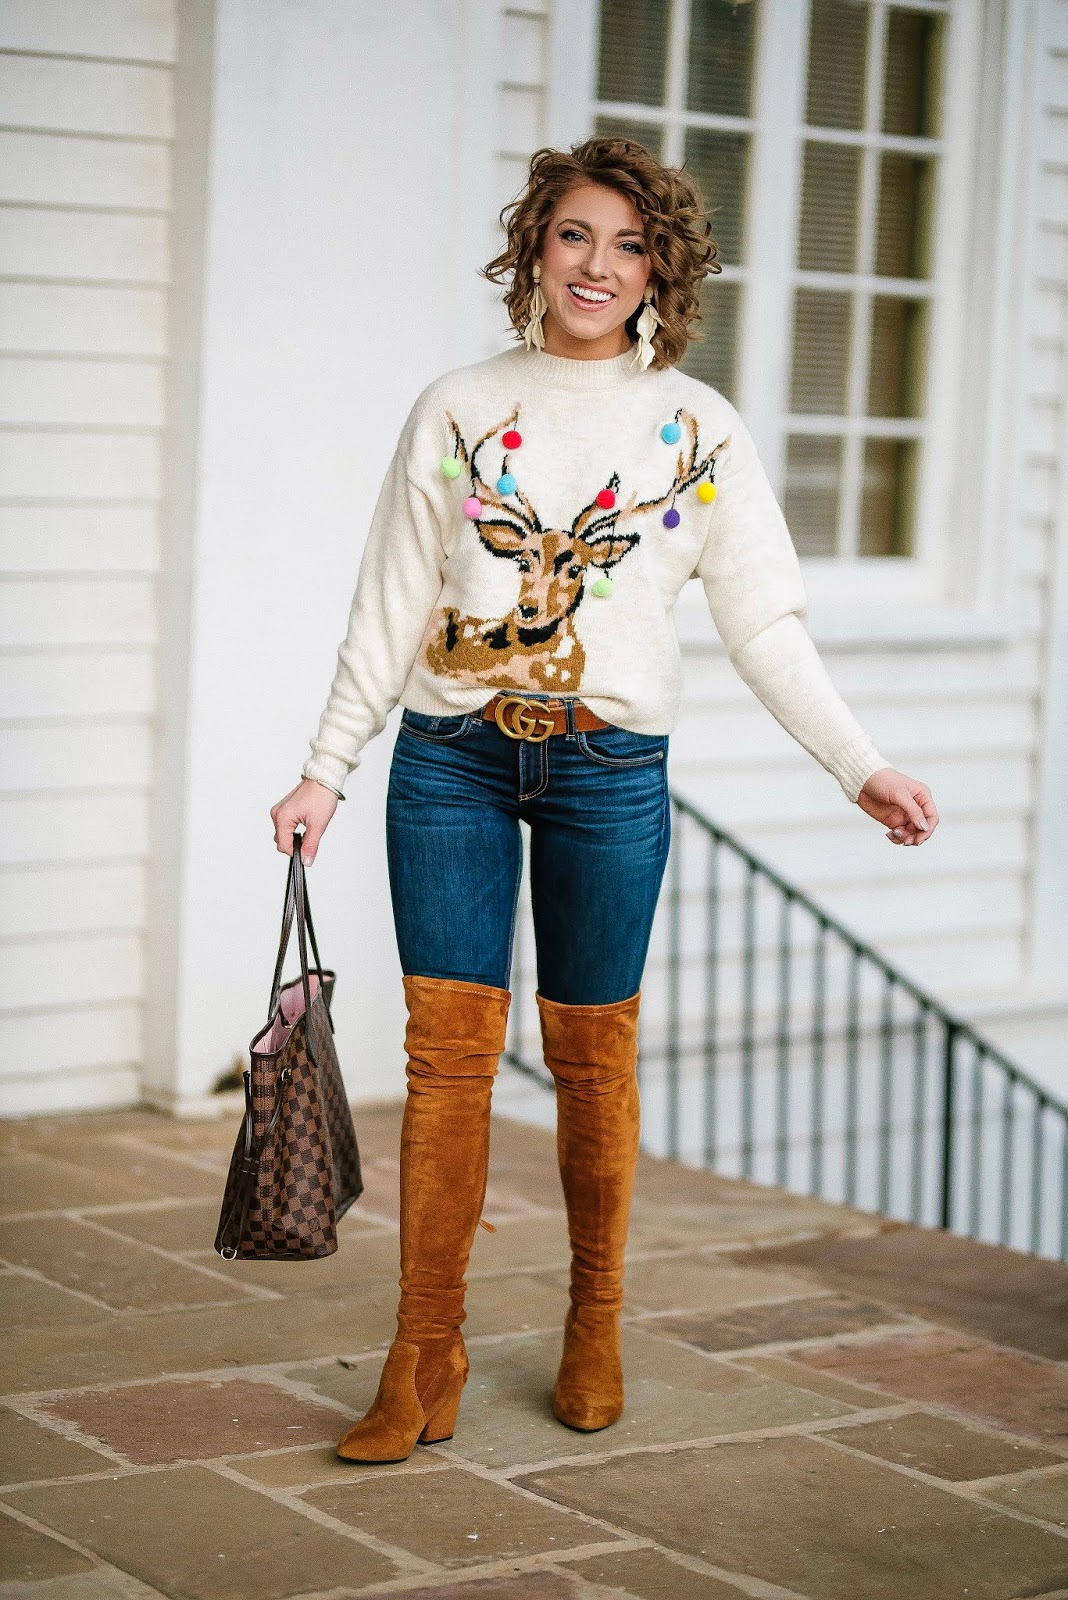 Casual Holiday Style: Pom Pom Reindeer Sweater - Something Delightful Blog